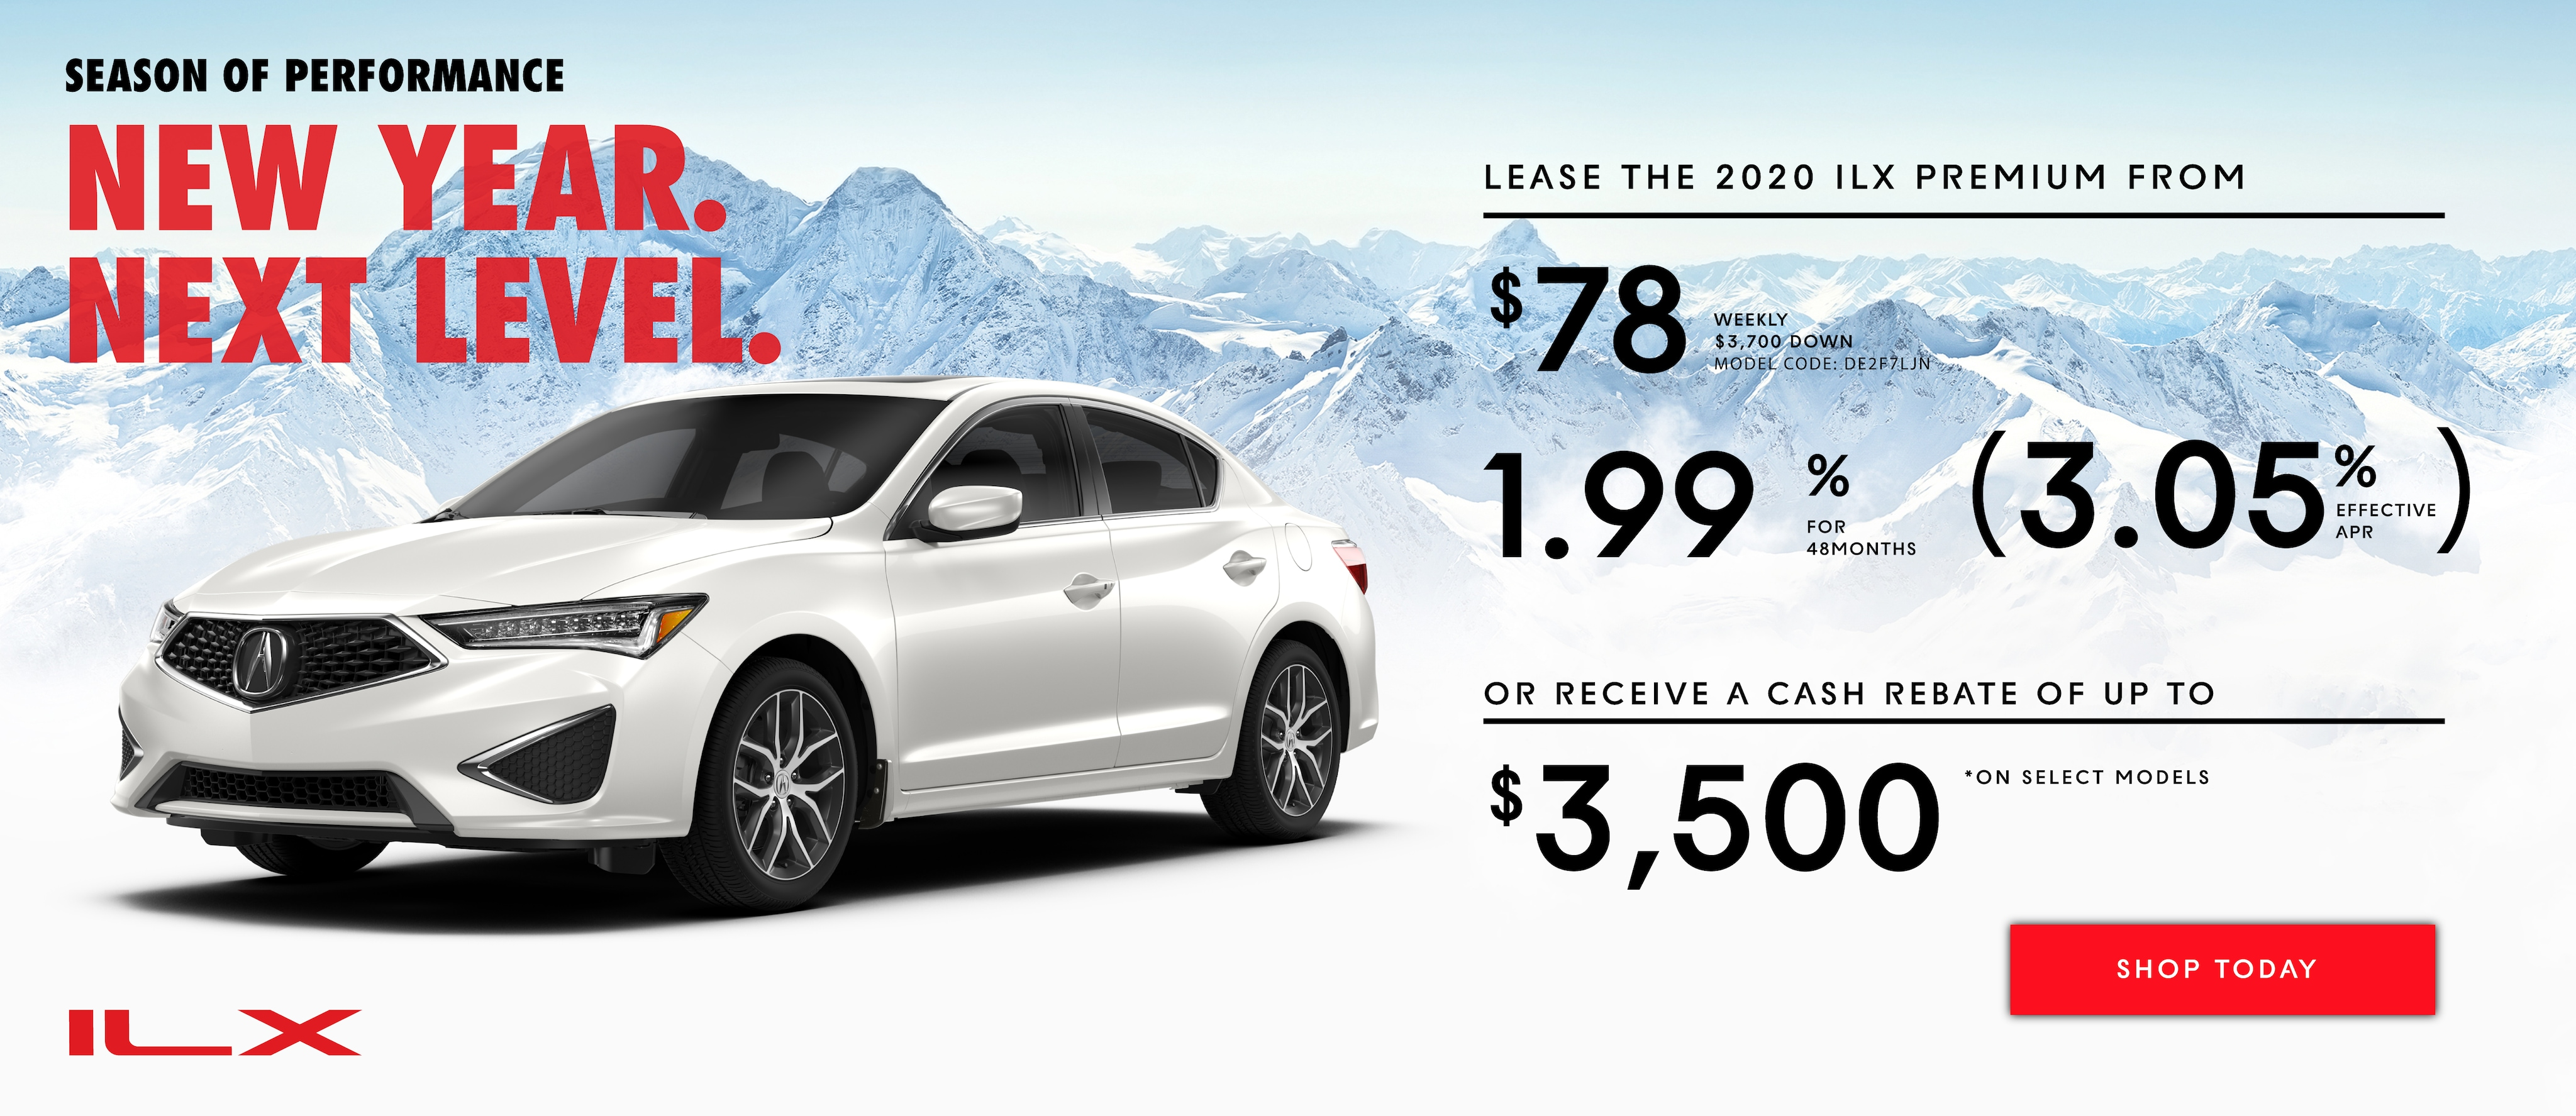 Promotion for leasing the 2020 Acura ILX